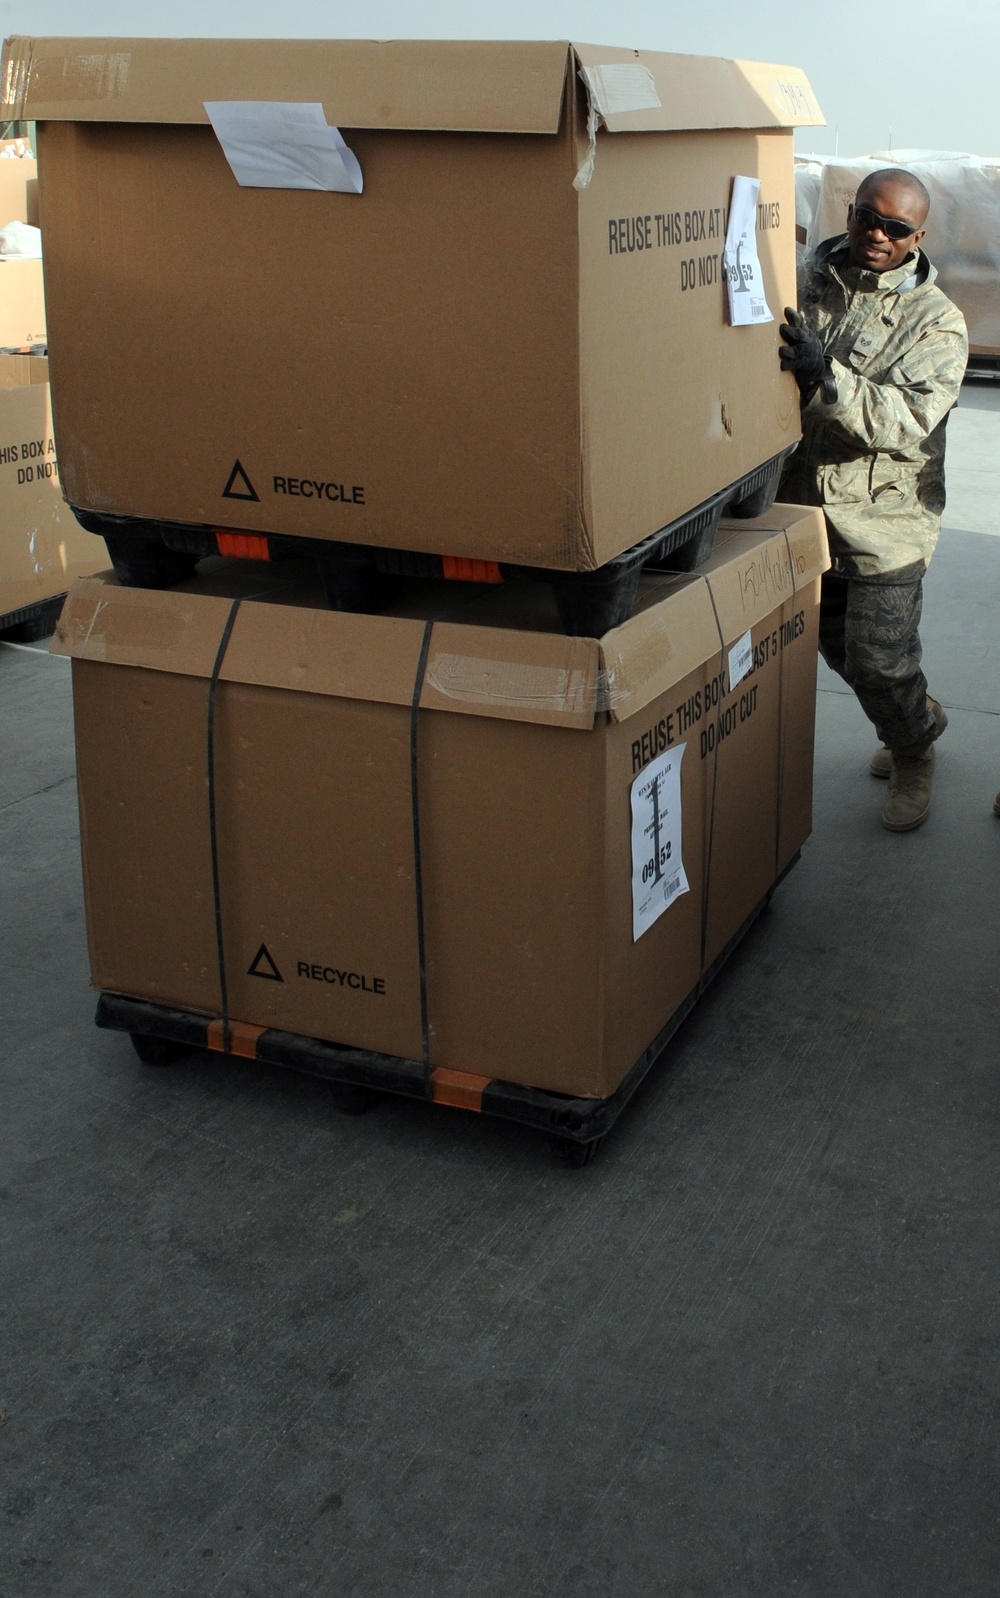 Mobility Airman profile: Scott NCO supports mail operations for Afghanistan base